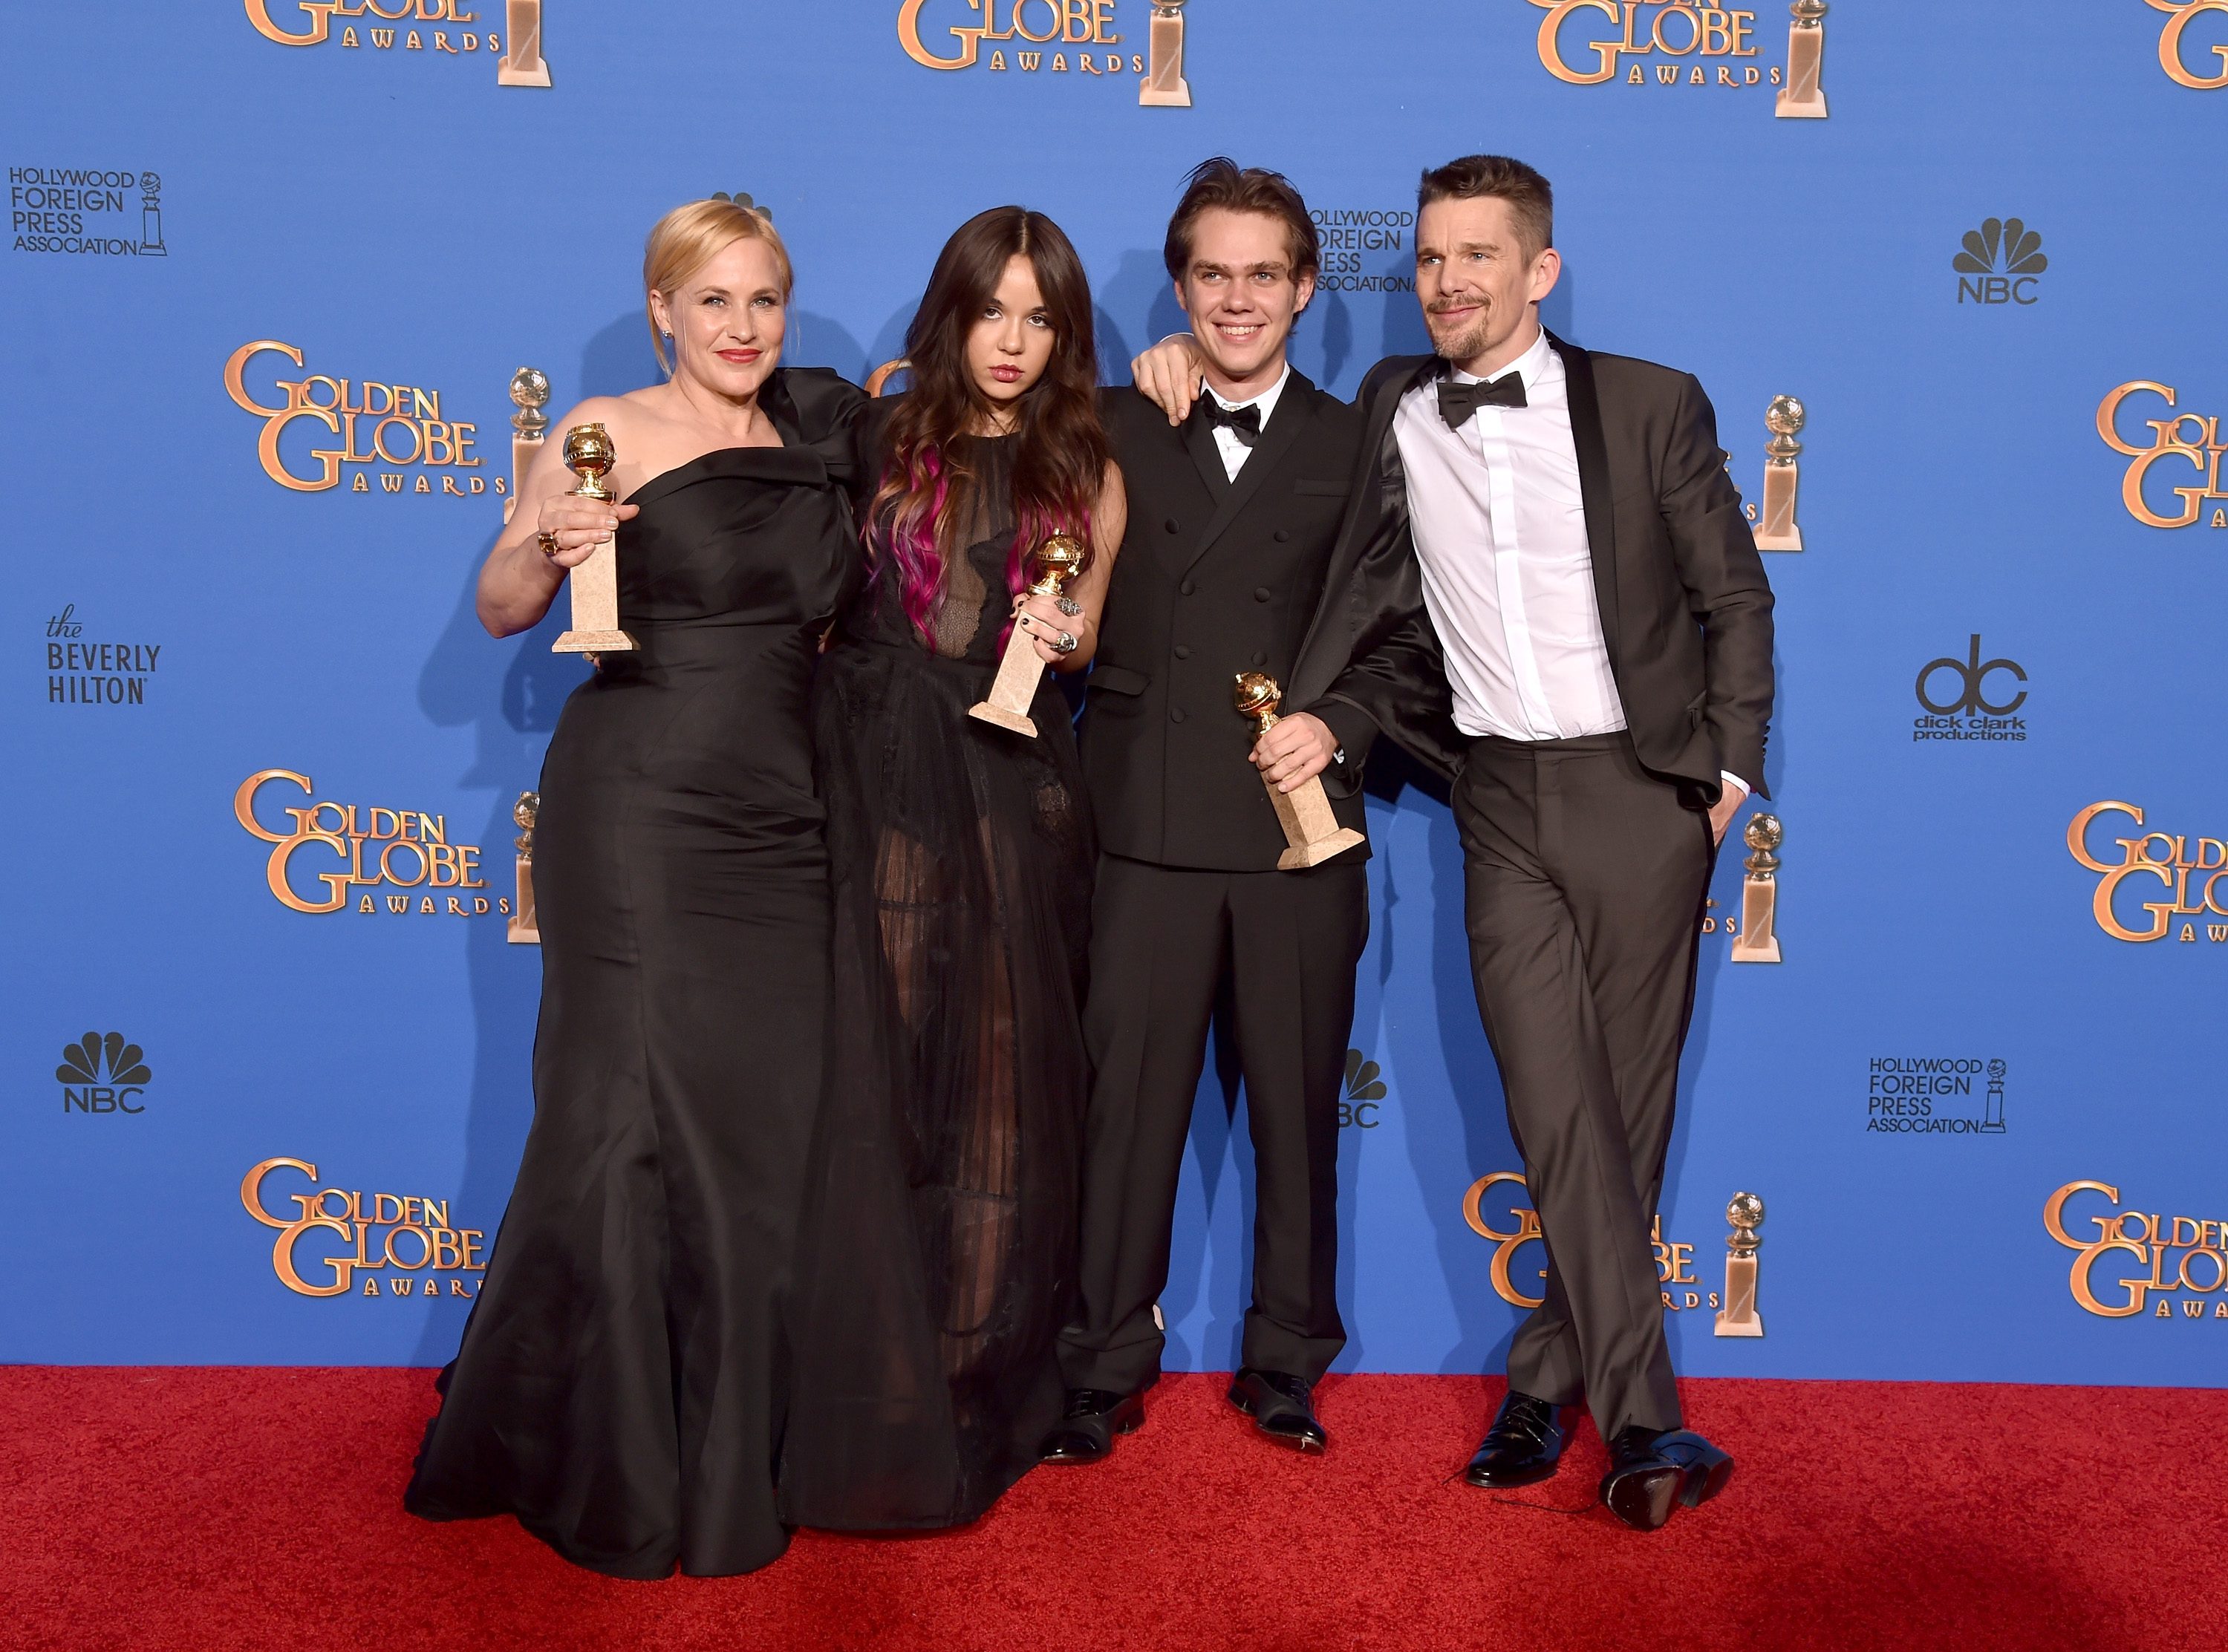 Lista de Ganadores Golden Globe Awards 2015